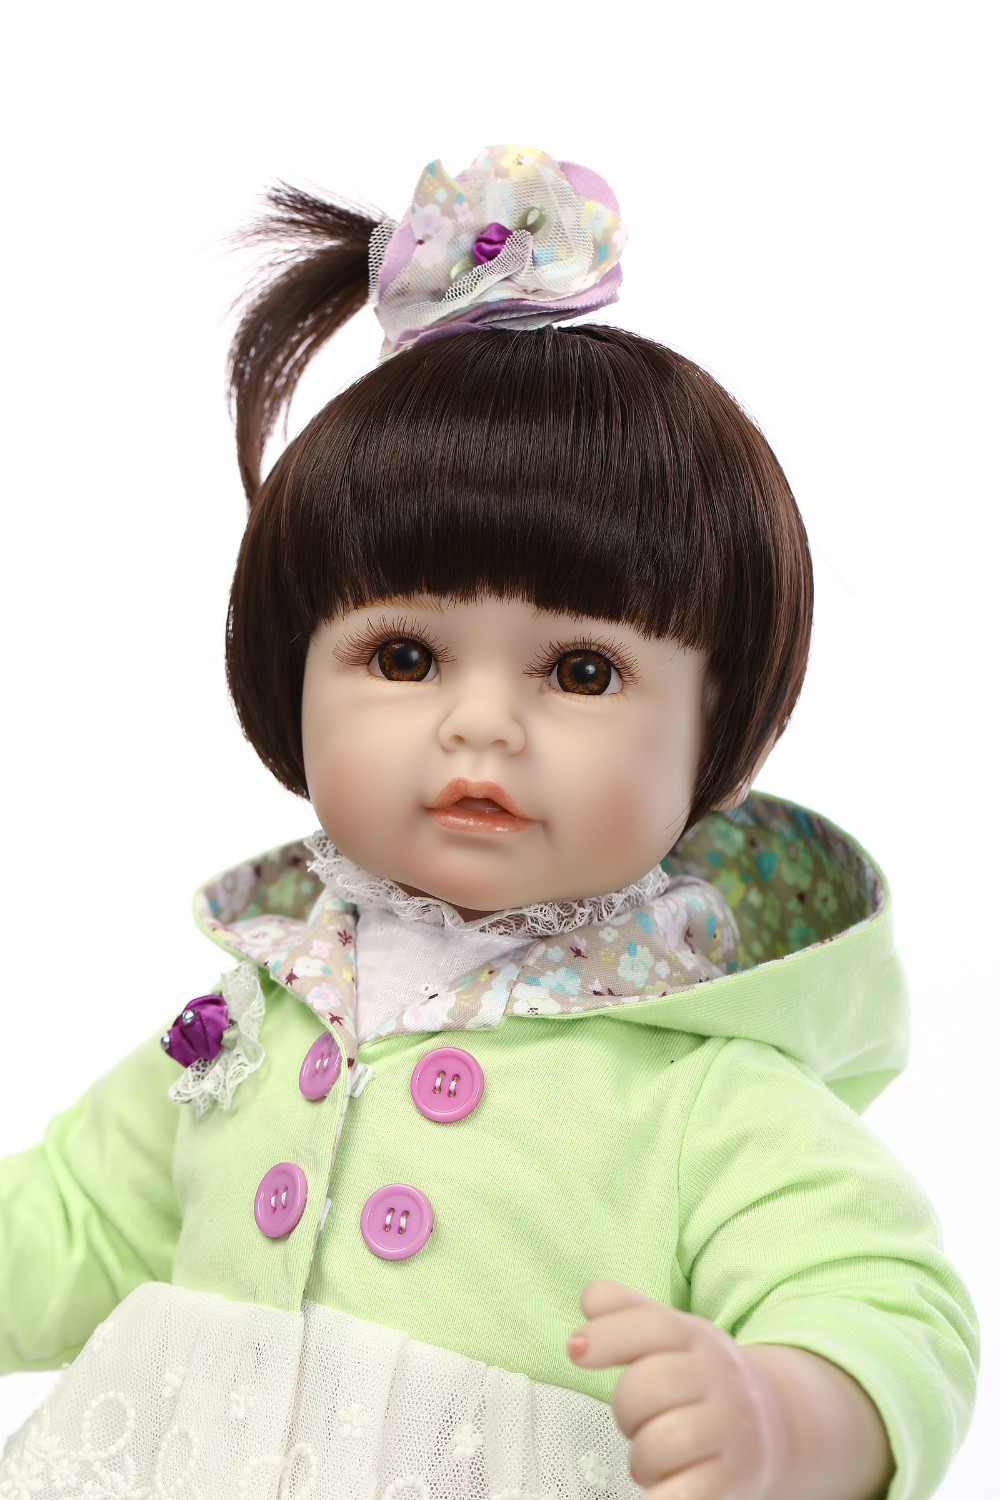 20inch 50cm Silicone vinyl reborn toddler doll toy for girl lifelike princess dolls play house toy birthday Children's Day gift silicone vinyl reborn toddler doll toys for girl 55cm lifelike princess doll play house toy birthday christmas gift brinquedods